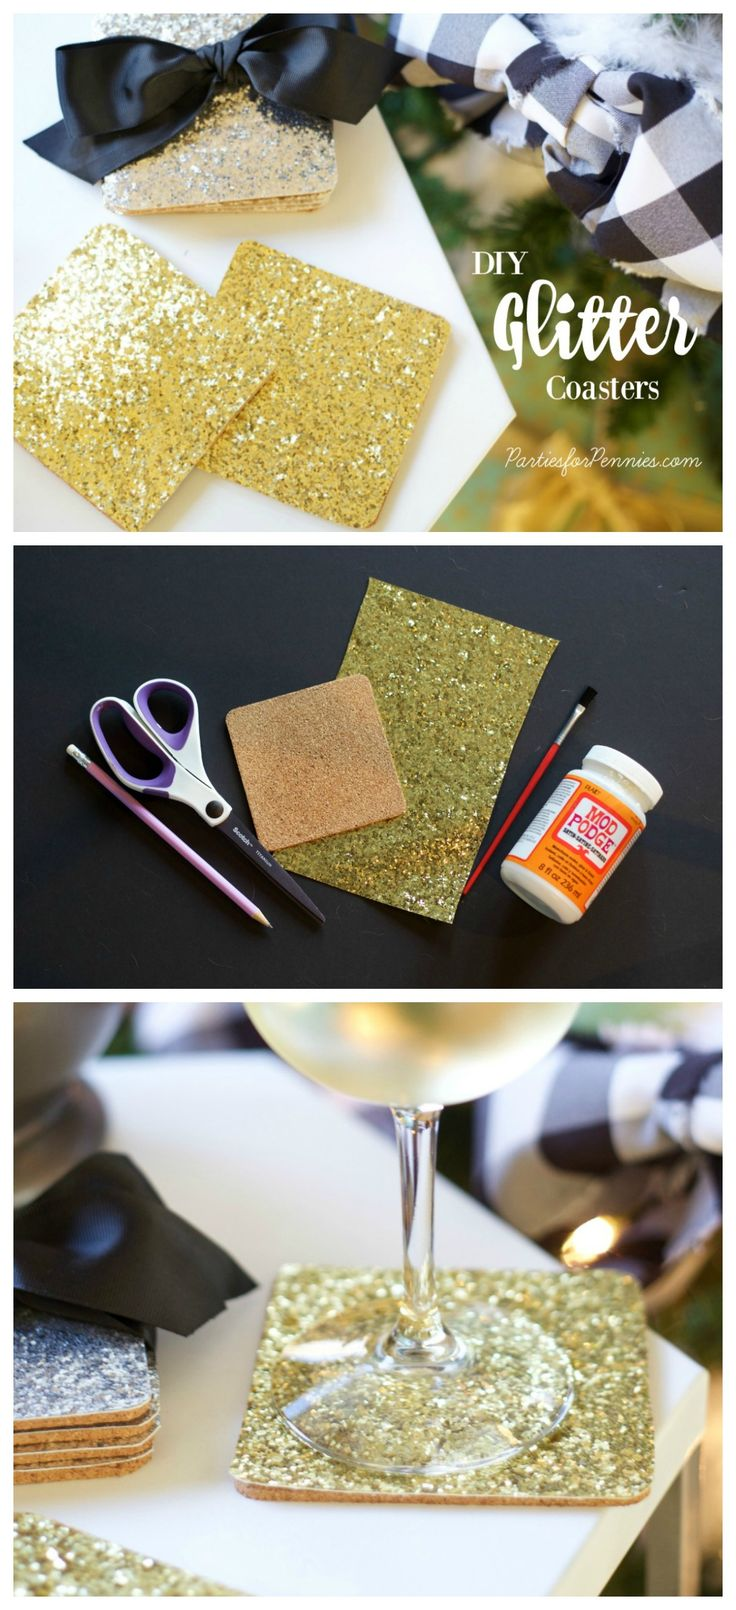 DIY Glitter Coasters by PartiesforPennies.com | Homemade Gift | DIY Gift | Hostess Gift | Gift for Entertainer